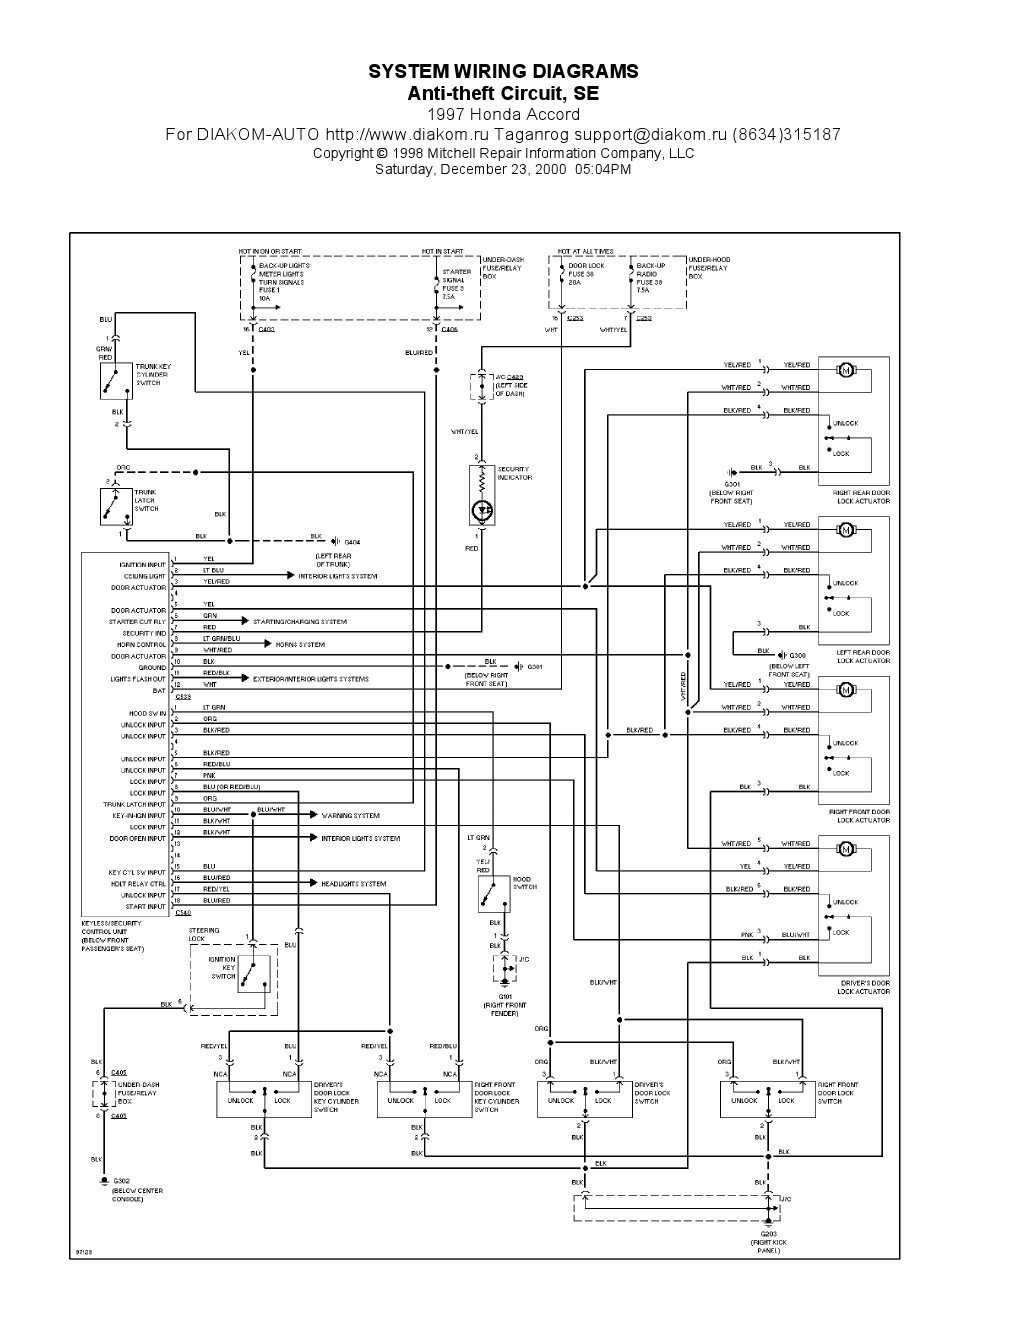 97 honda accord wiring diagram wiring diagram post 97 honda accord headlight wiring diagram [ 1020 x 1320 Pixel ]